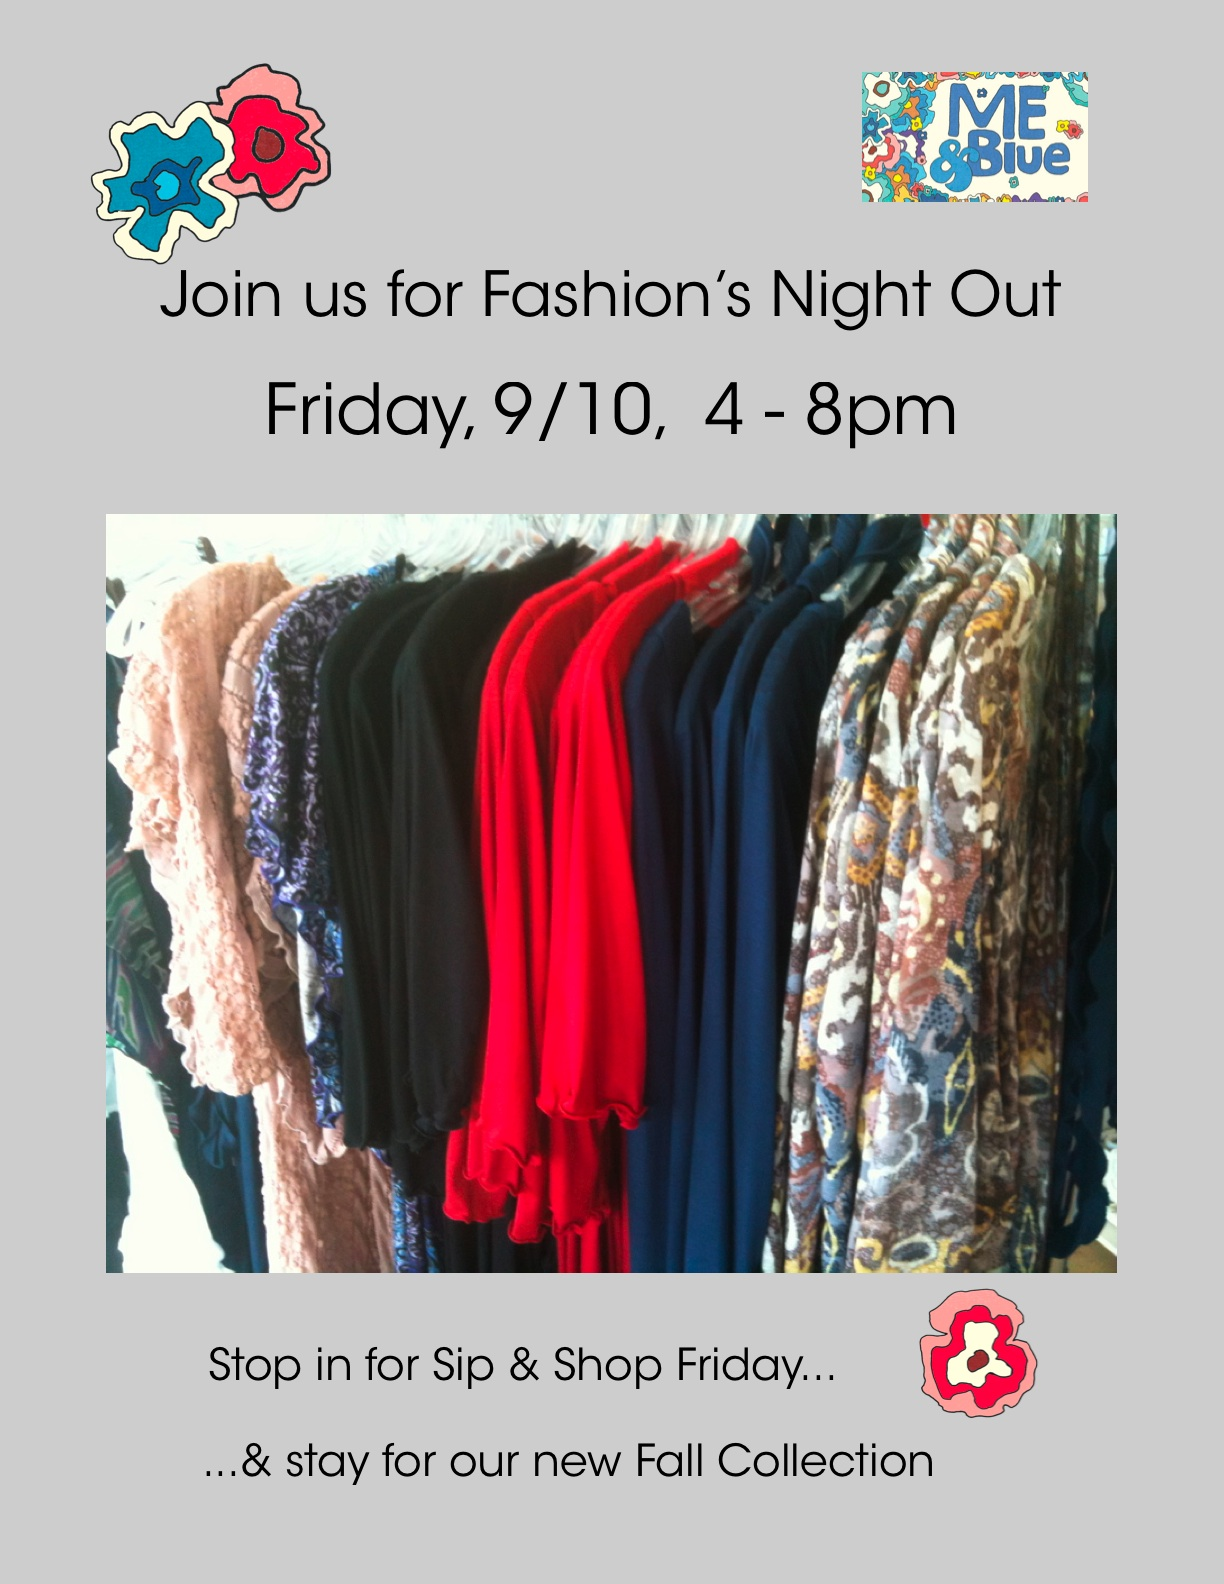 ASPEN 'S FASHION & ART NIGHT OUT - Gay Ski Week 2019 West ave fashion night out